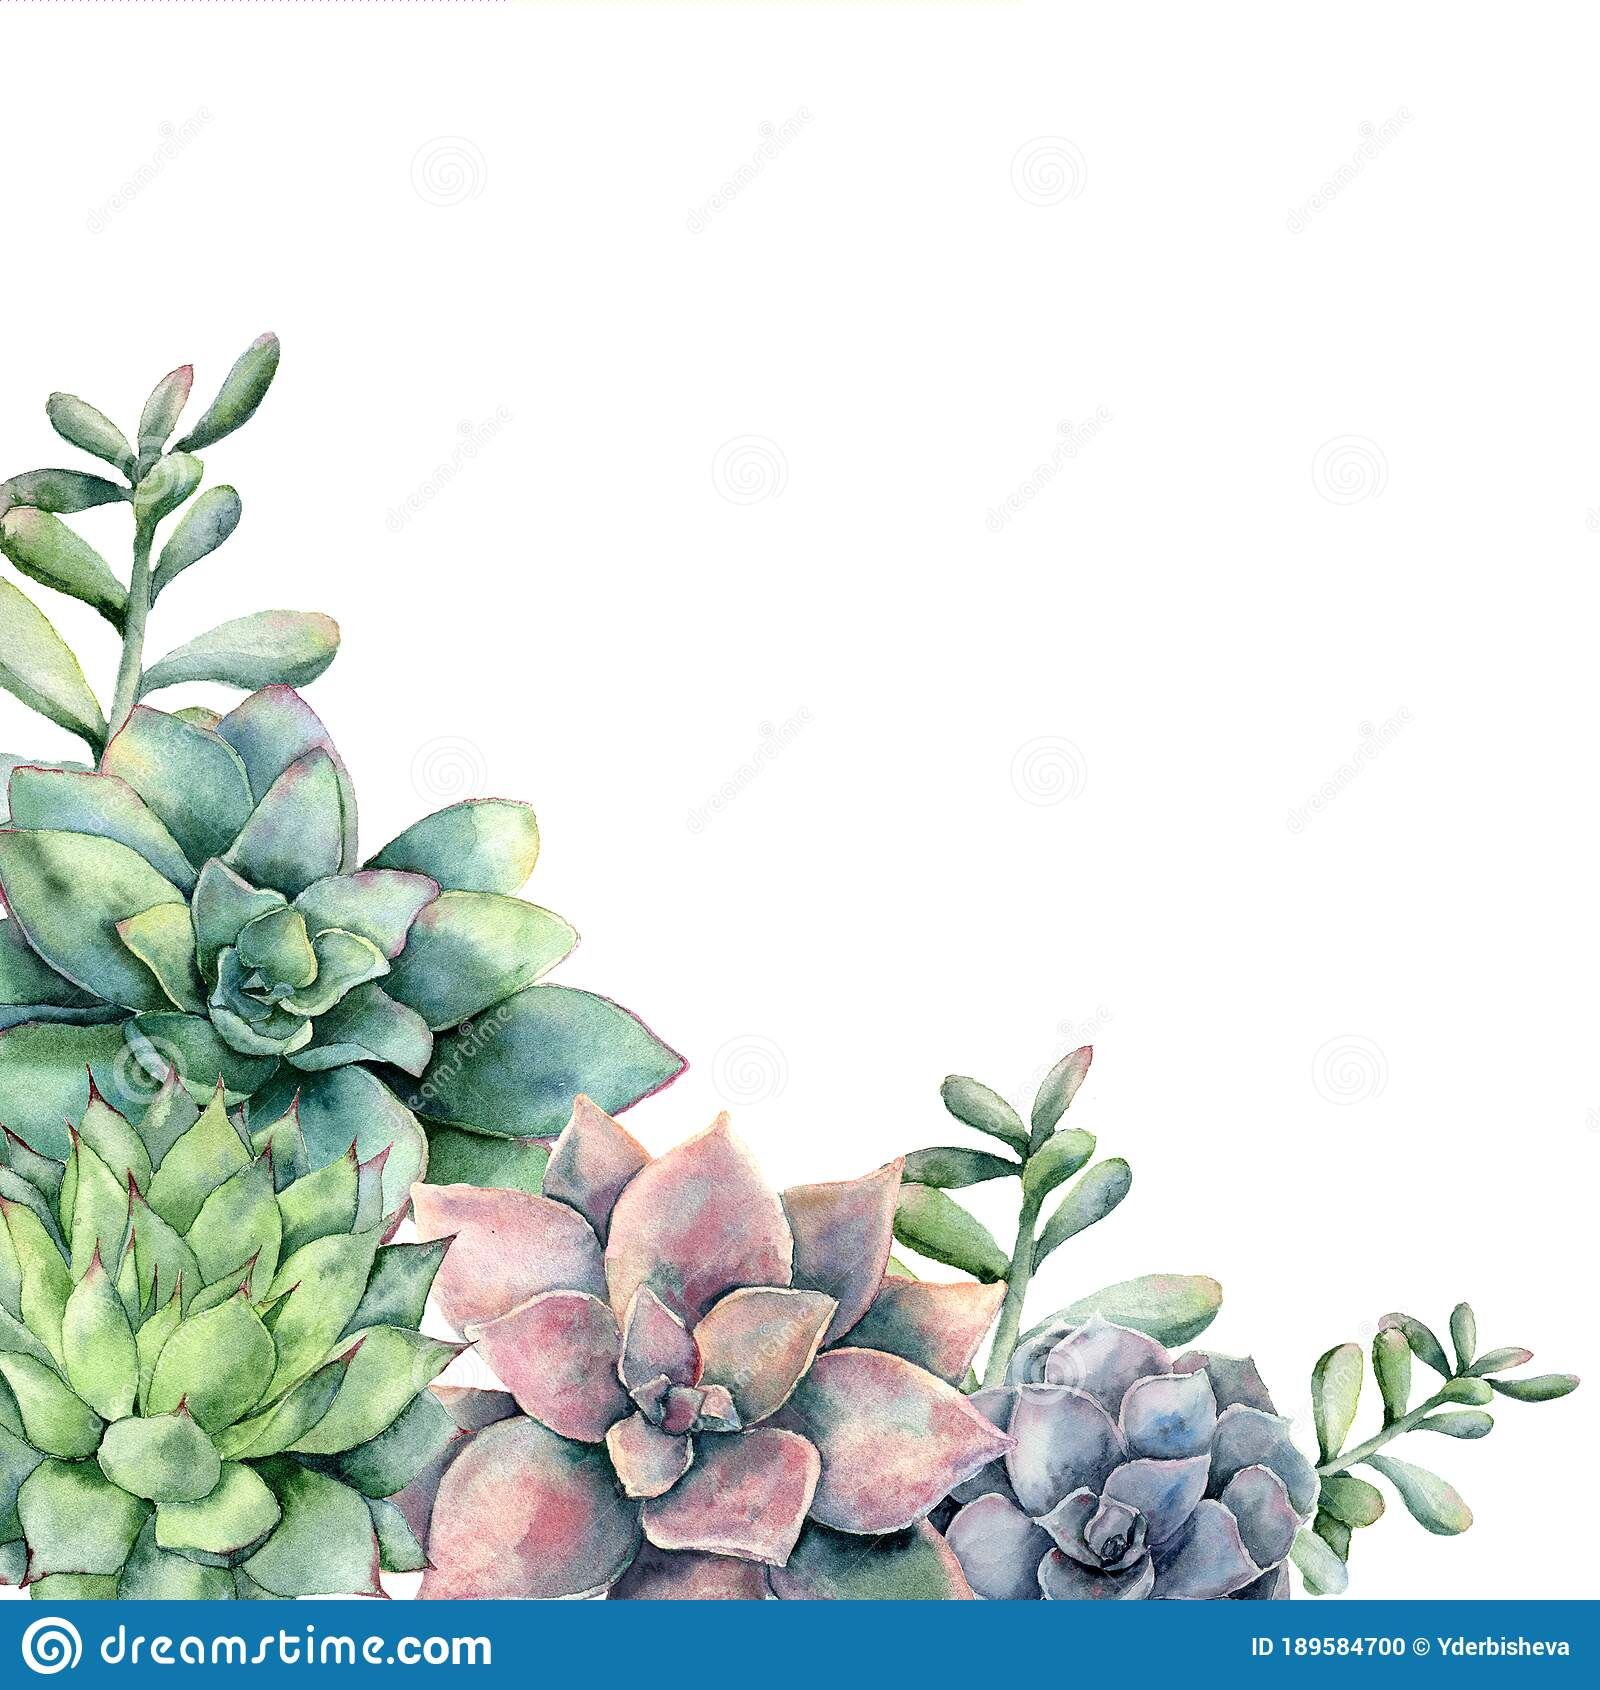 Watercolor Card With Bouquet Of Succulents Hand Painted Green And Violet Cacti Isolated On White Background Floral Stock Photo Image Of Elegant Cacti 189584700